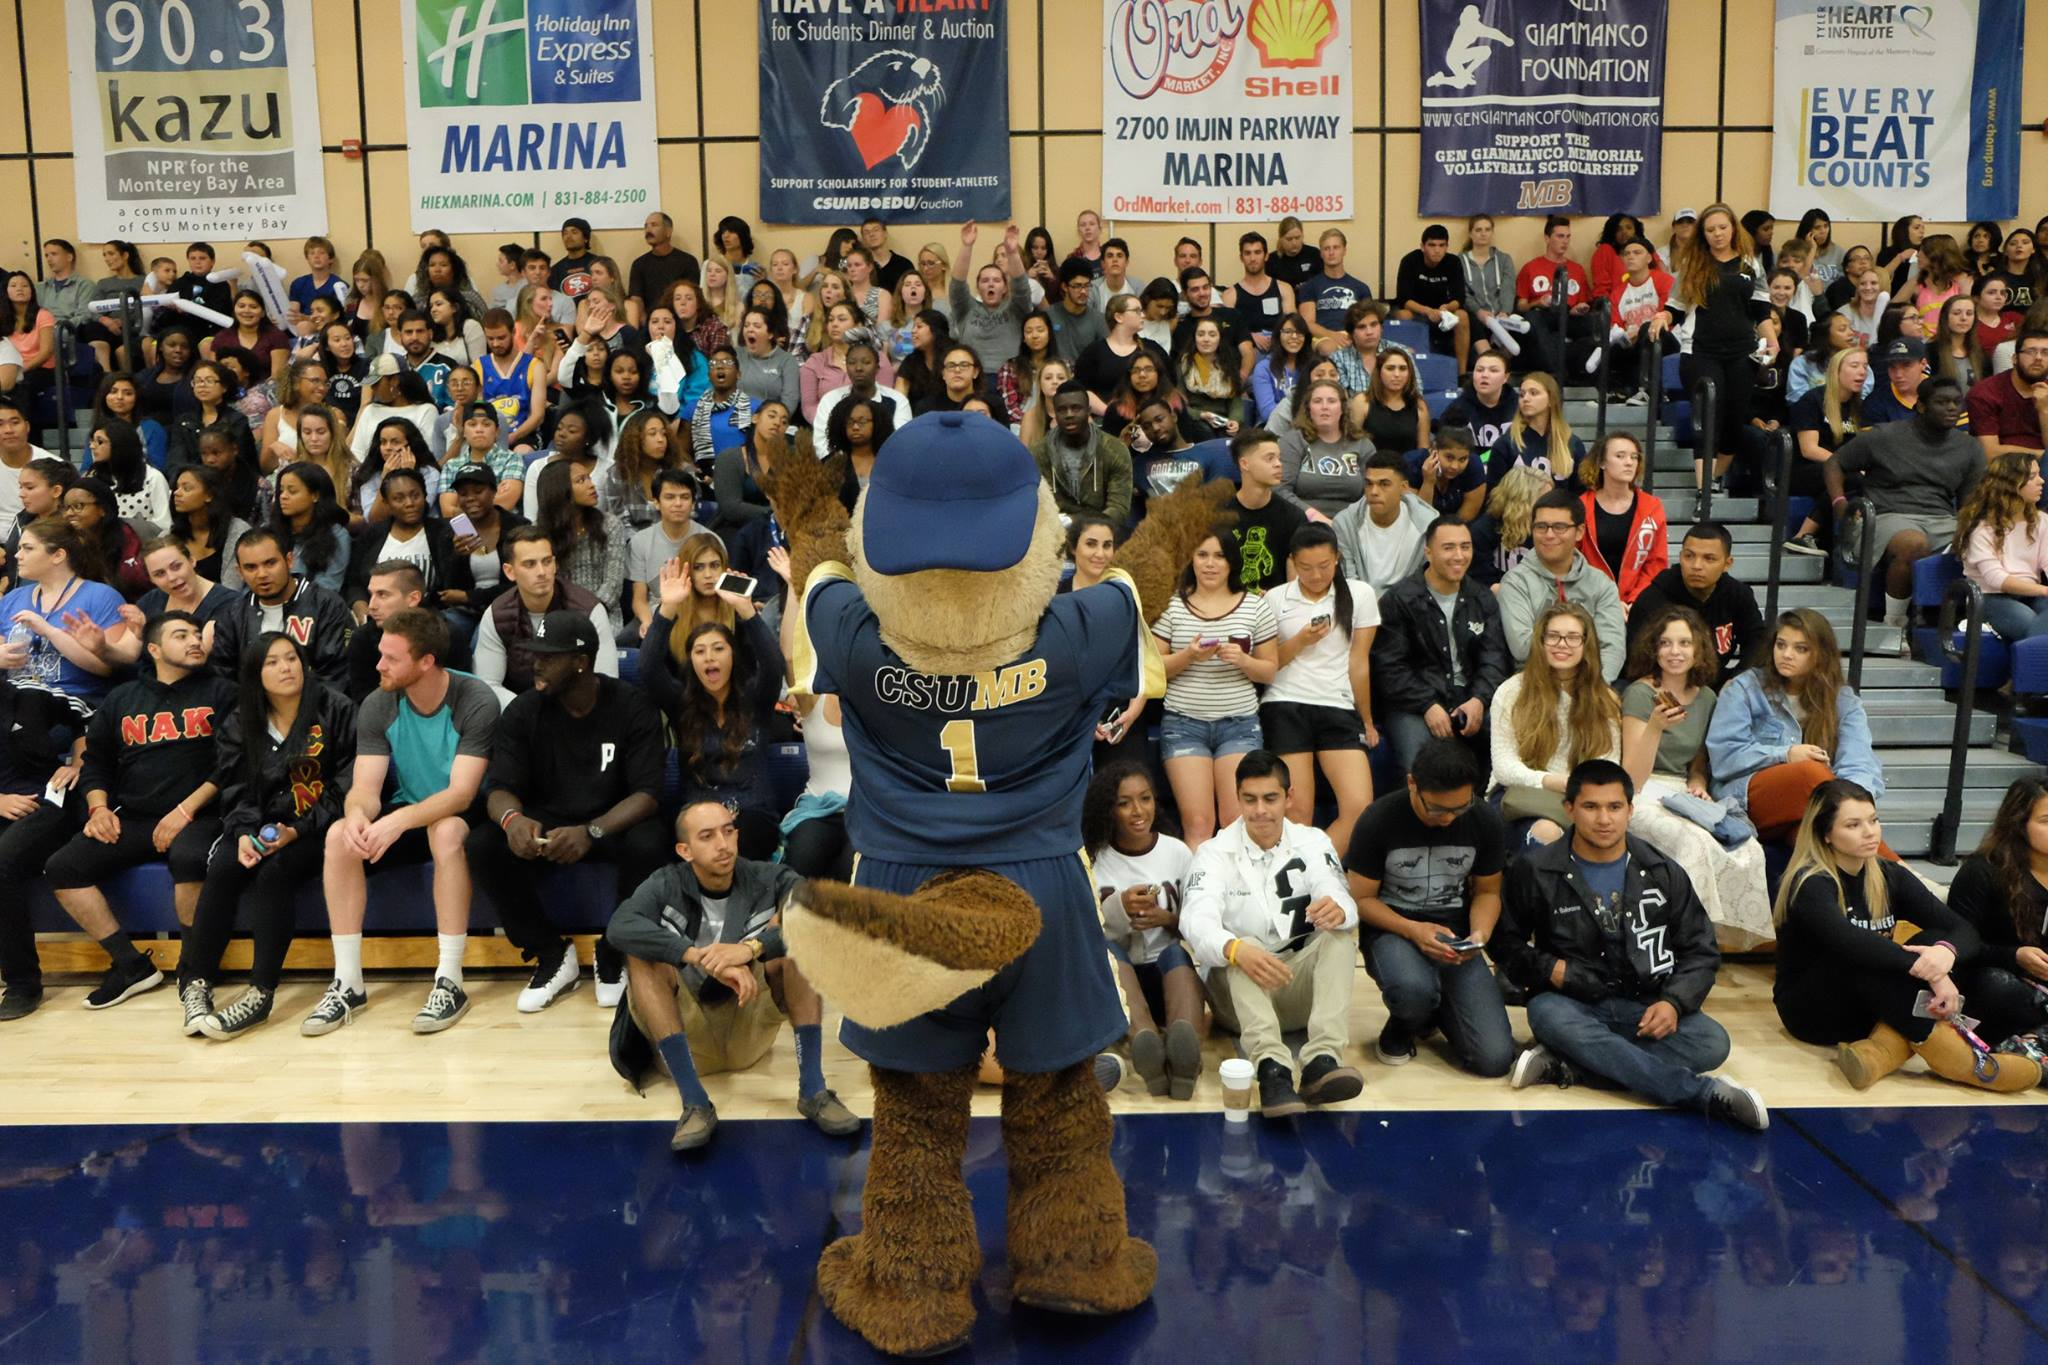 """School mascot """"Monte"""" cheering with the crowd during a basketball game"""